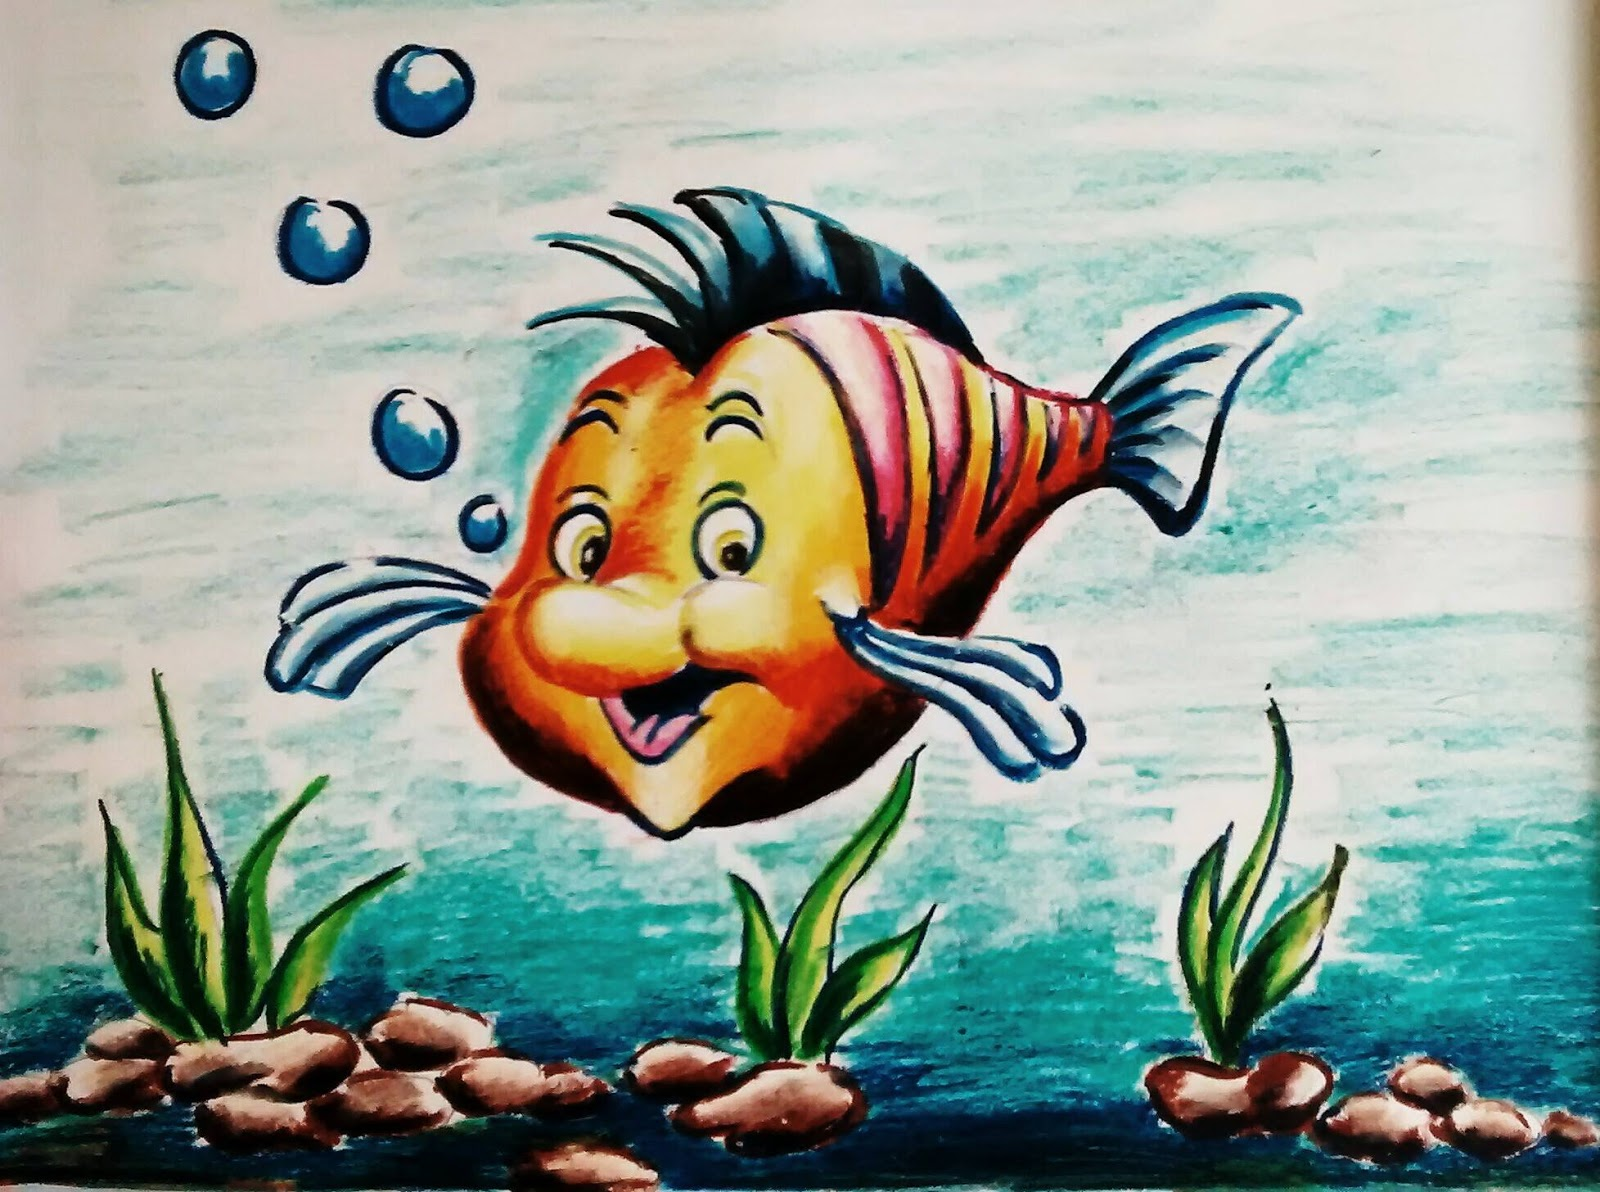 fish drawing pictures kids colored bird pencil drawing fish drawing pictures kids colored